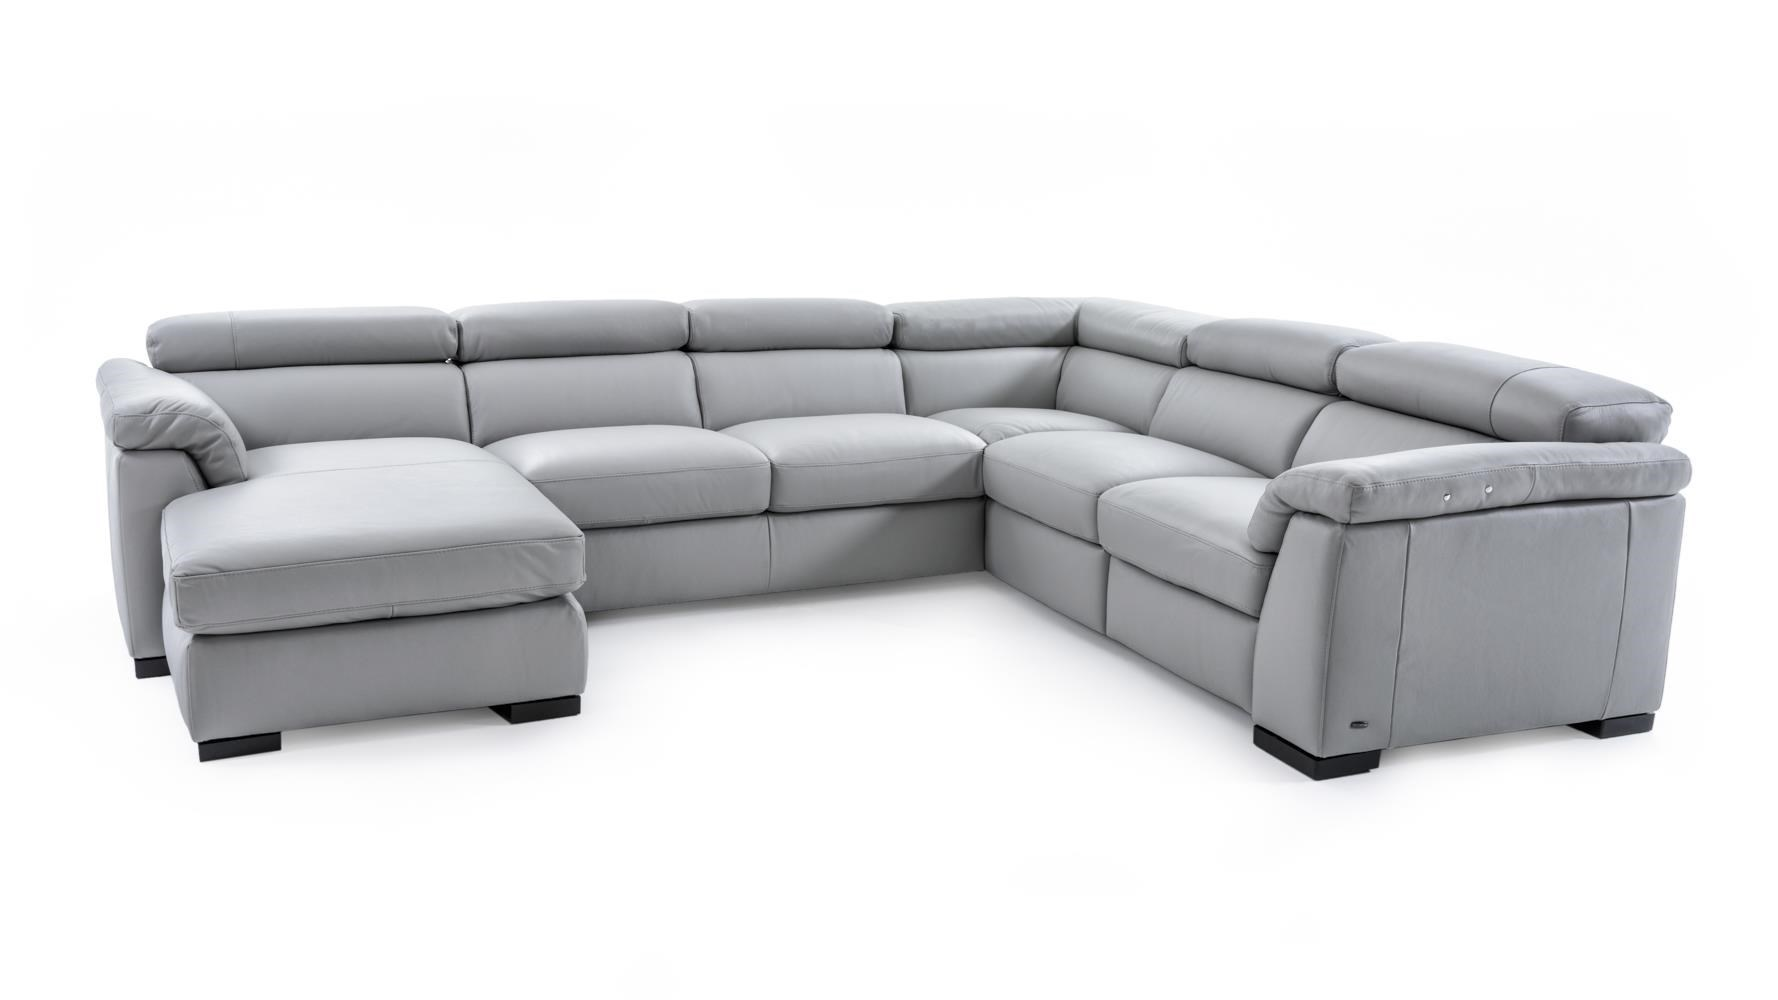 Leather Sectional Sofa Recliner B634 Contemporary Leather Sectional Sofa With Laf Chaise And Raf Power Recliner By Natuzzi Editions At Baer S Furniture